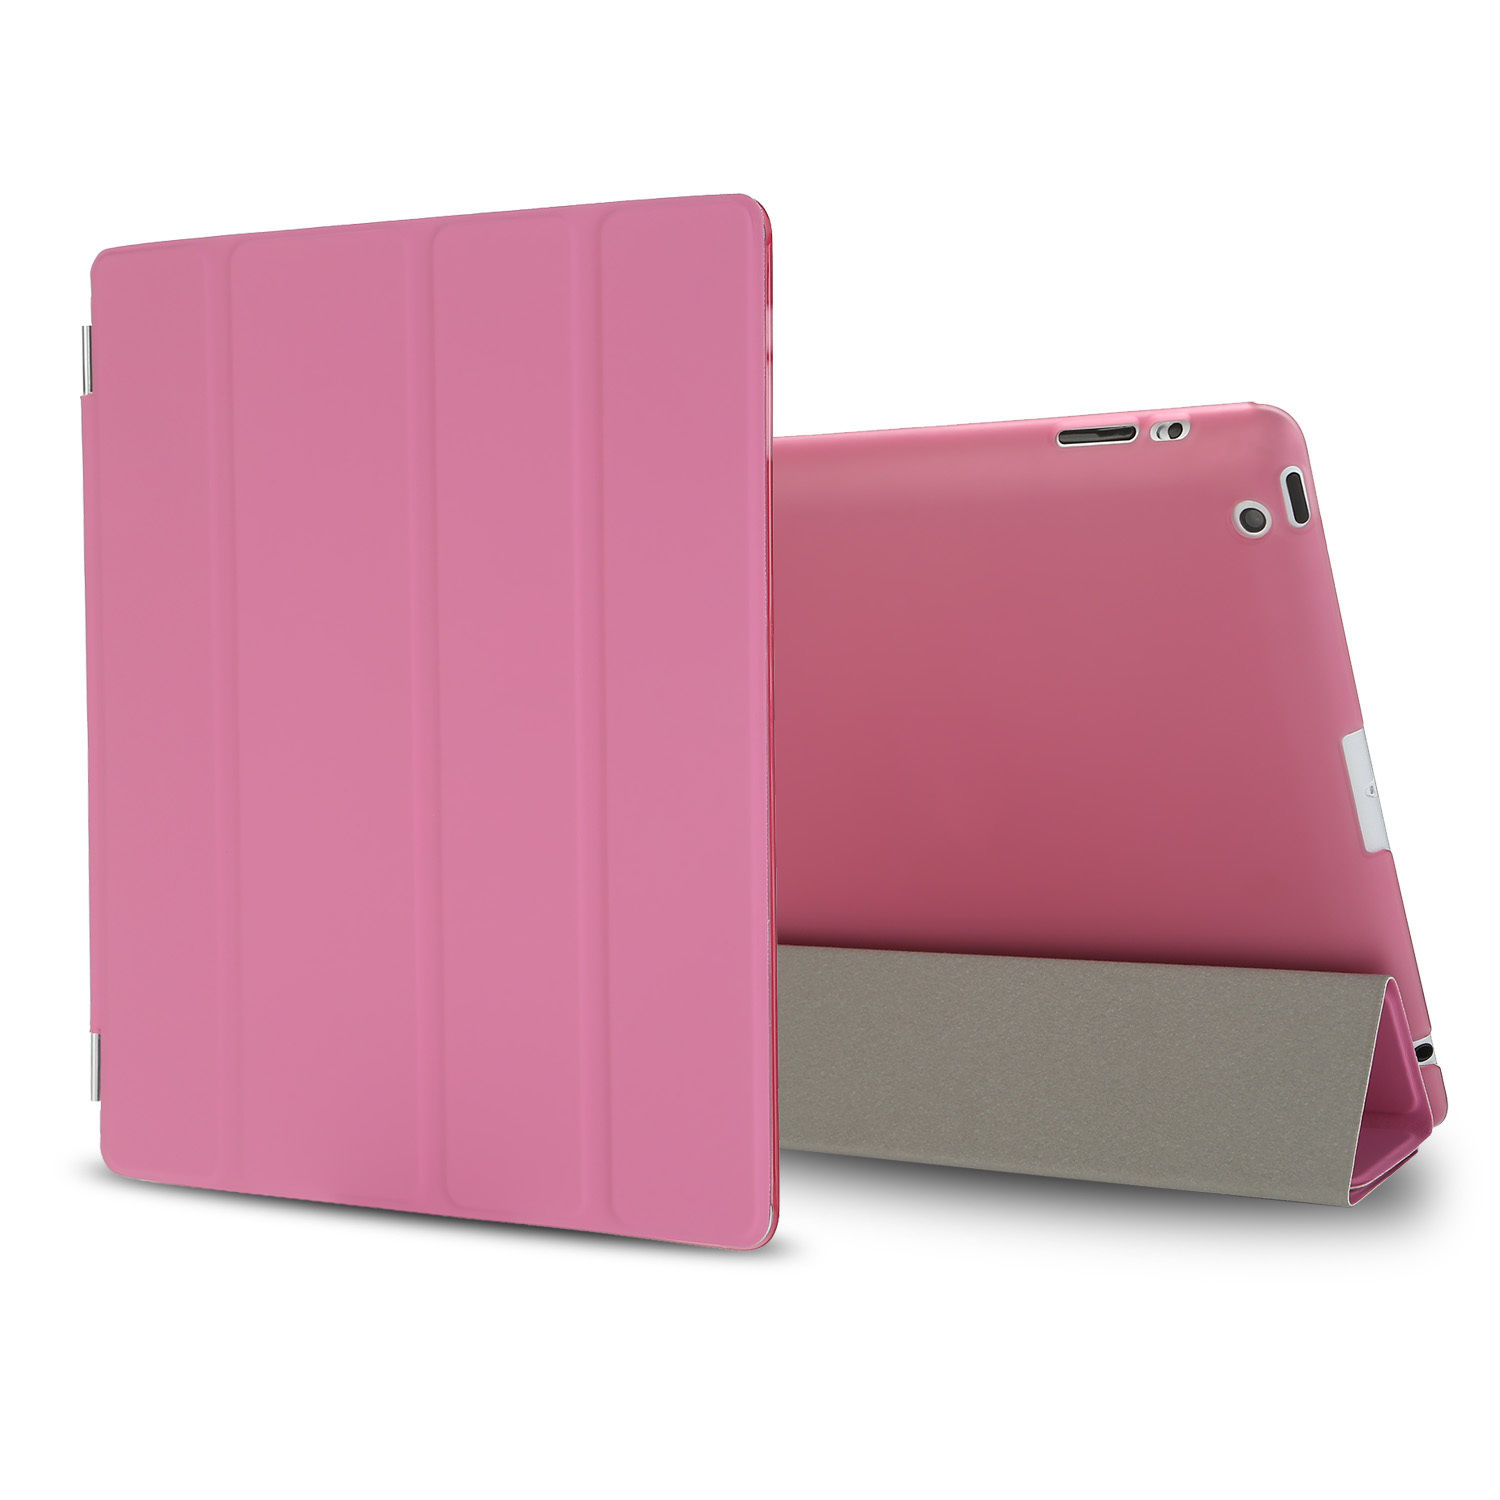 SLIM SMART COVER MAGNETIC PU LEATHER STAND CASE FOR IPAD 2 ...